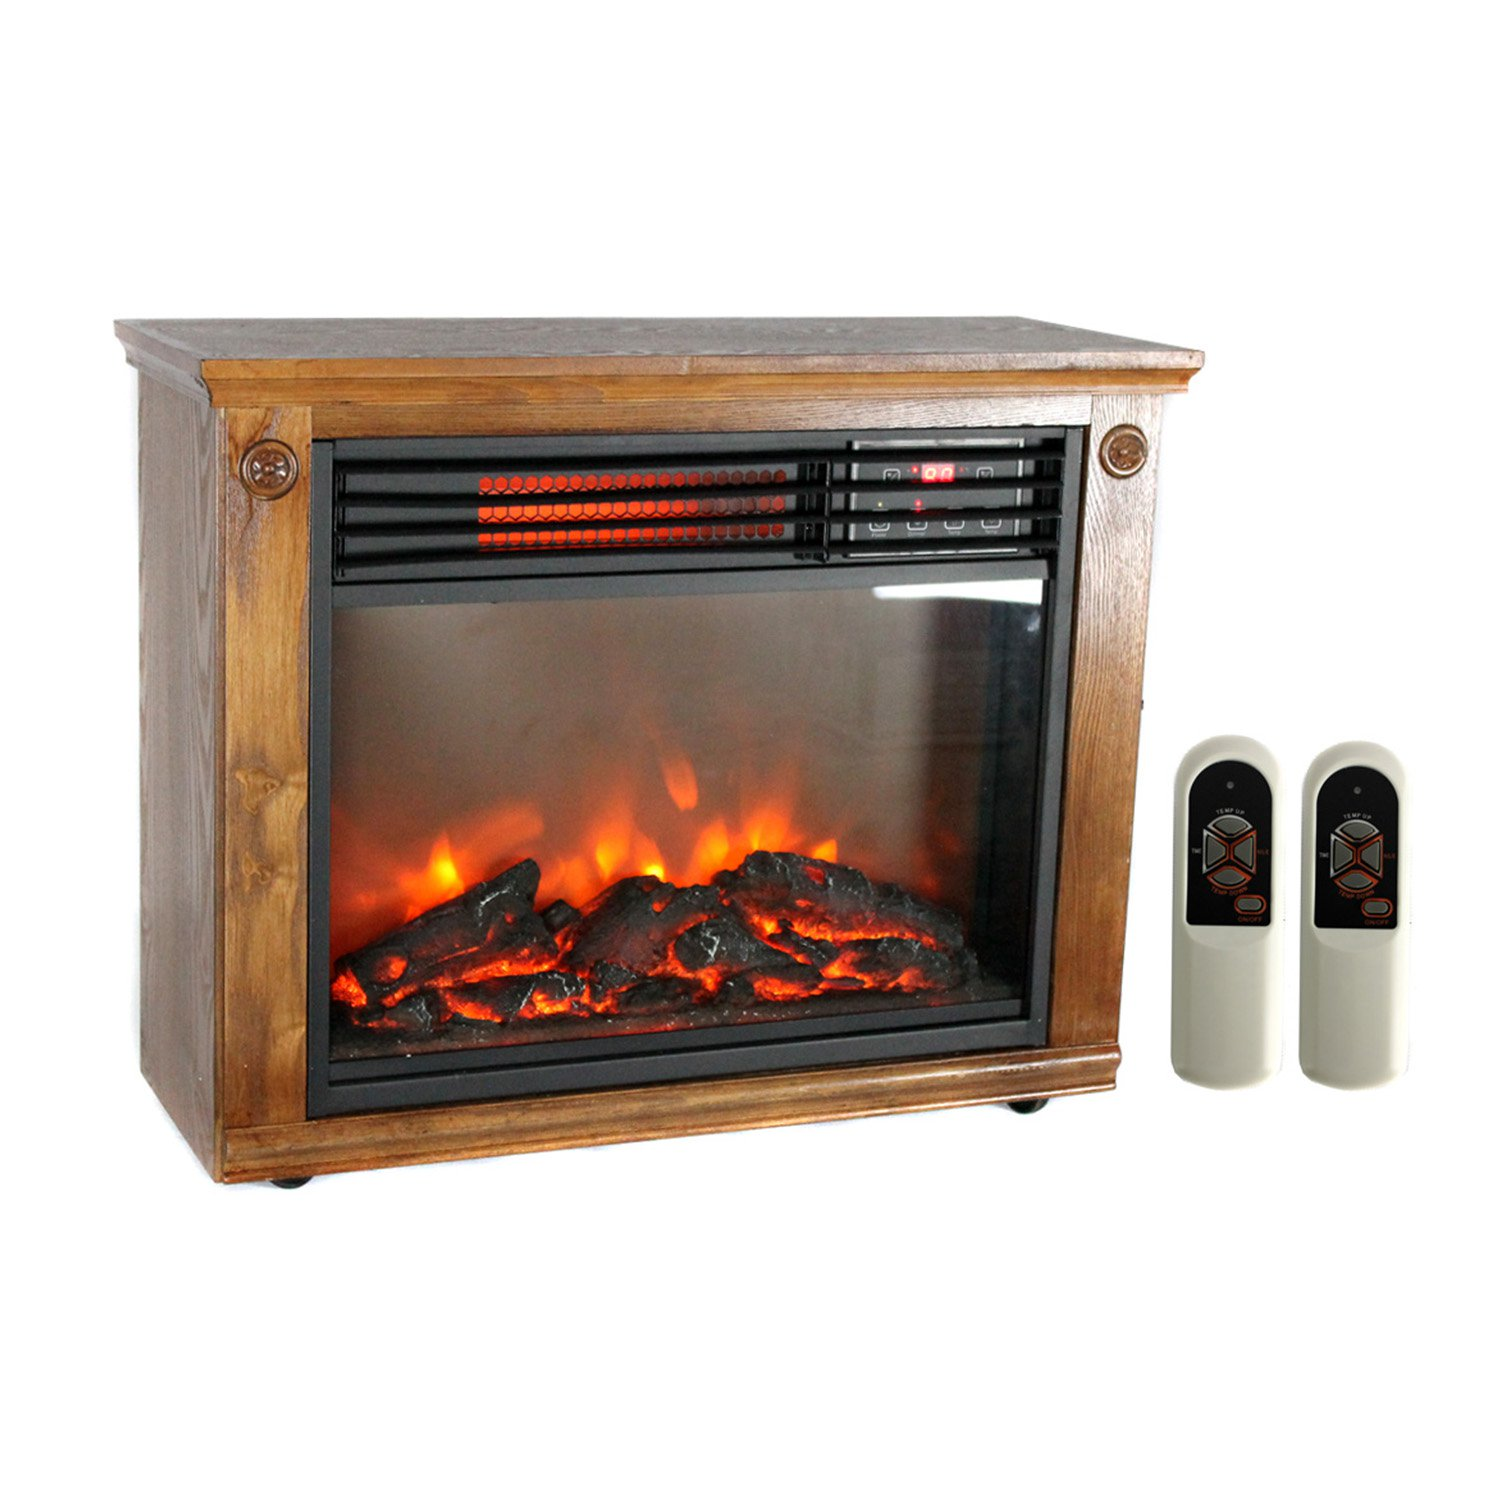 LifePro 3 Element Portable Electric Infrared Quartz Fireplace ...